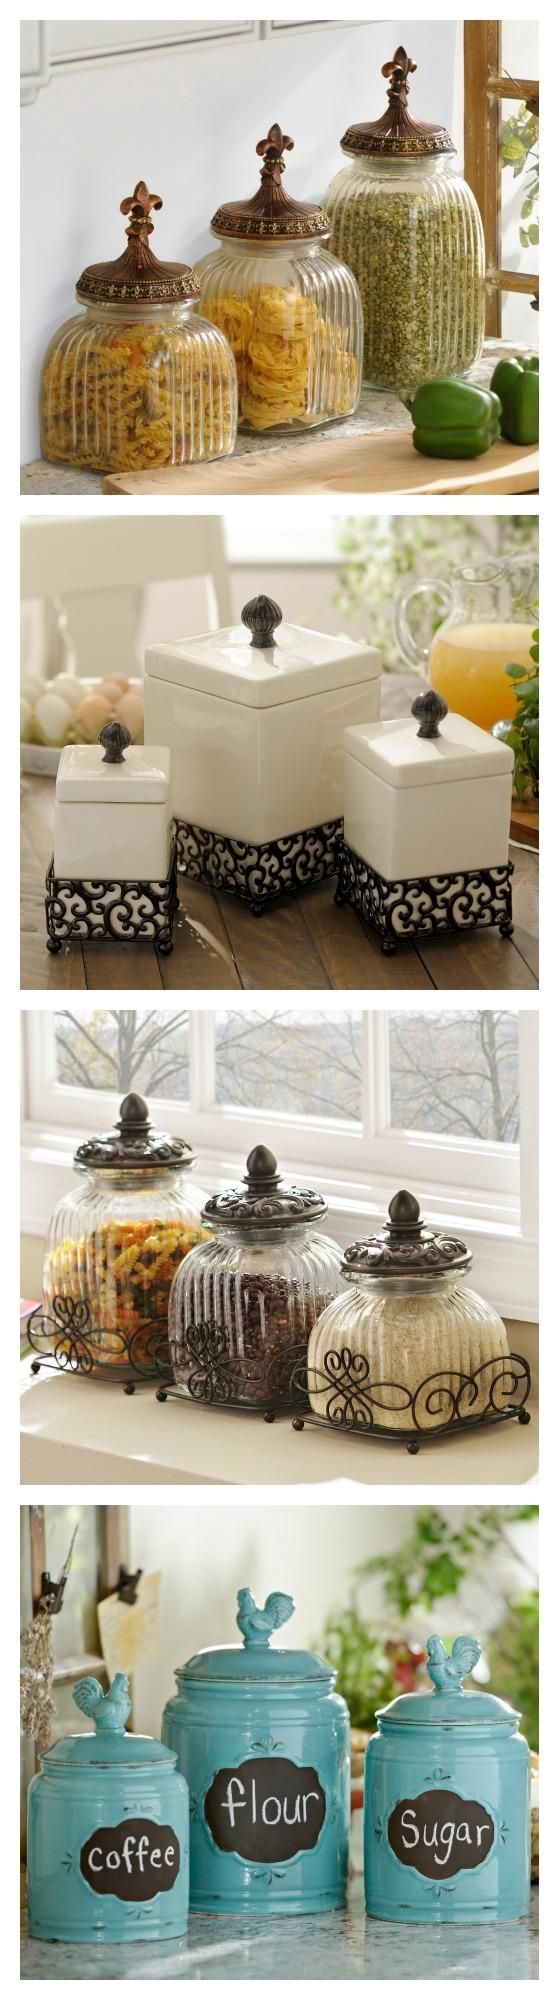 Clean up your kitchen counters with Kirkland's canister sets. They are available in all sizes, shapes and styles!